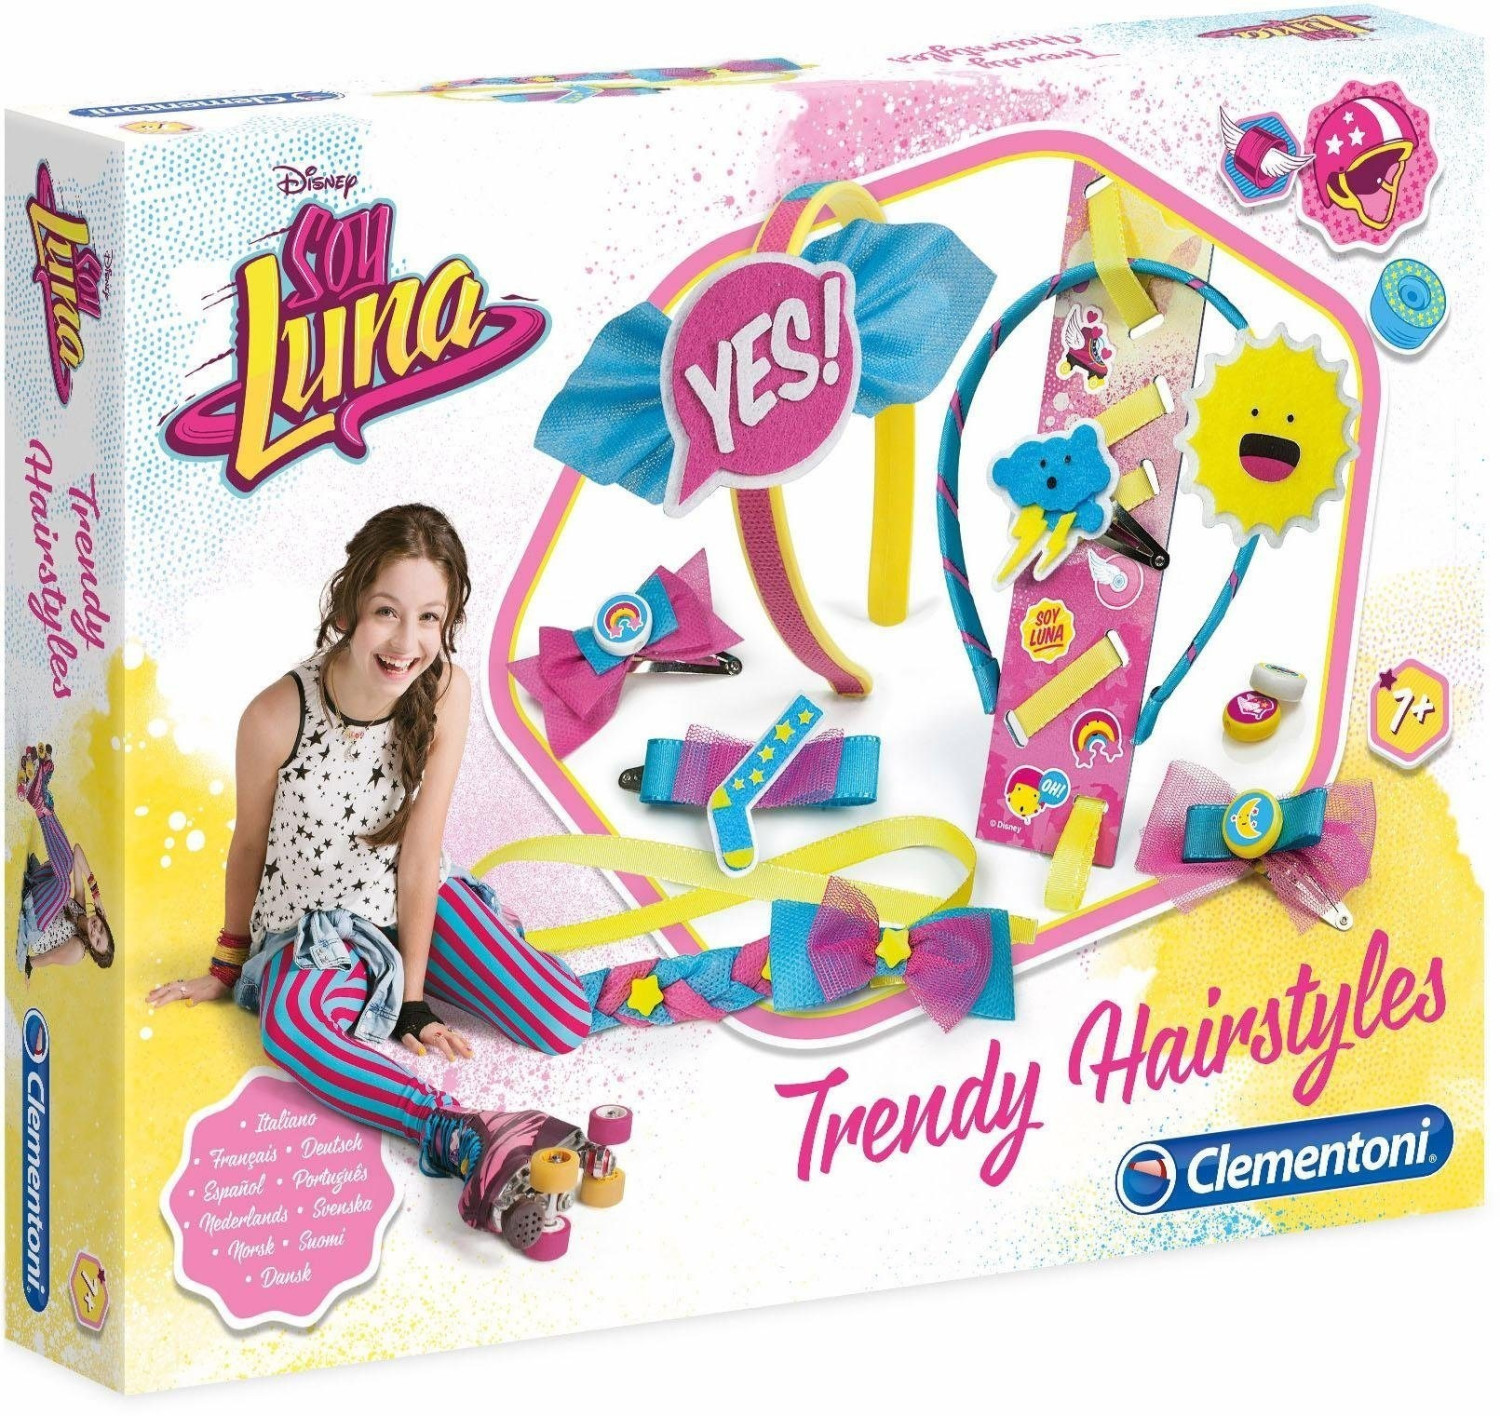 Clementoni Soy Luna Hairstyling